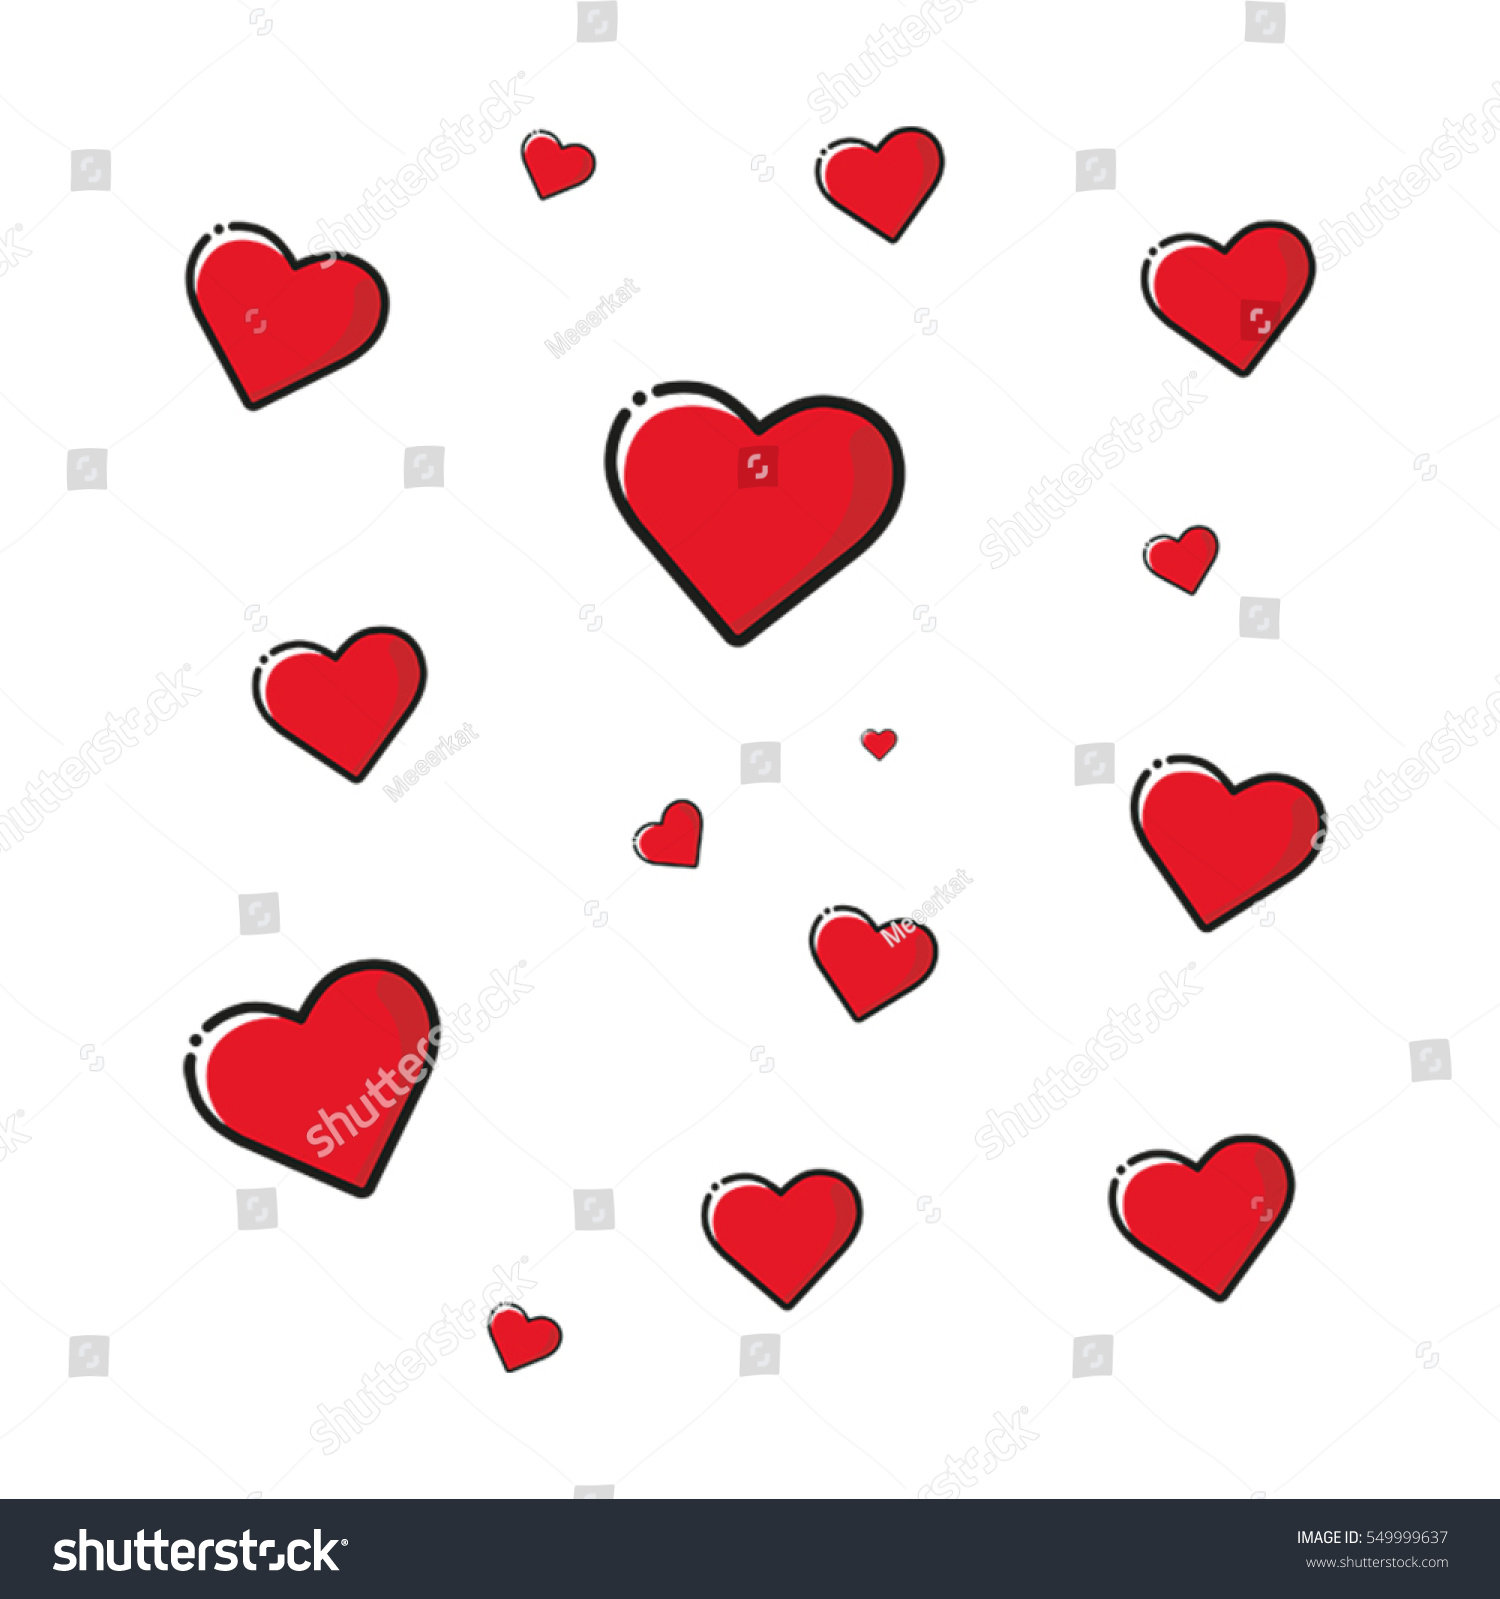 Heart Valentines Day Mothers Day Birthday Stock Vector 549999637    Shutterstock